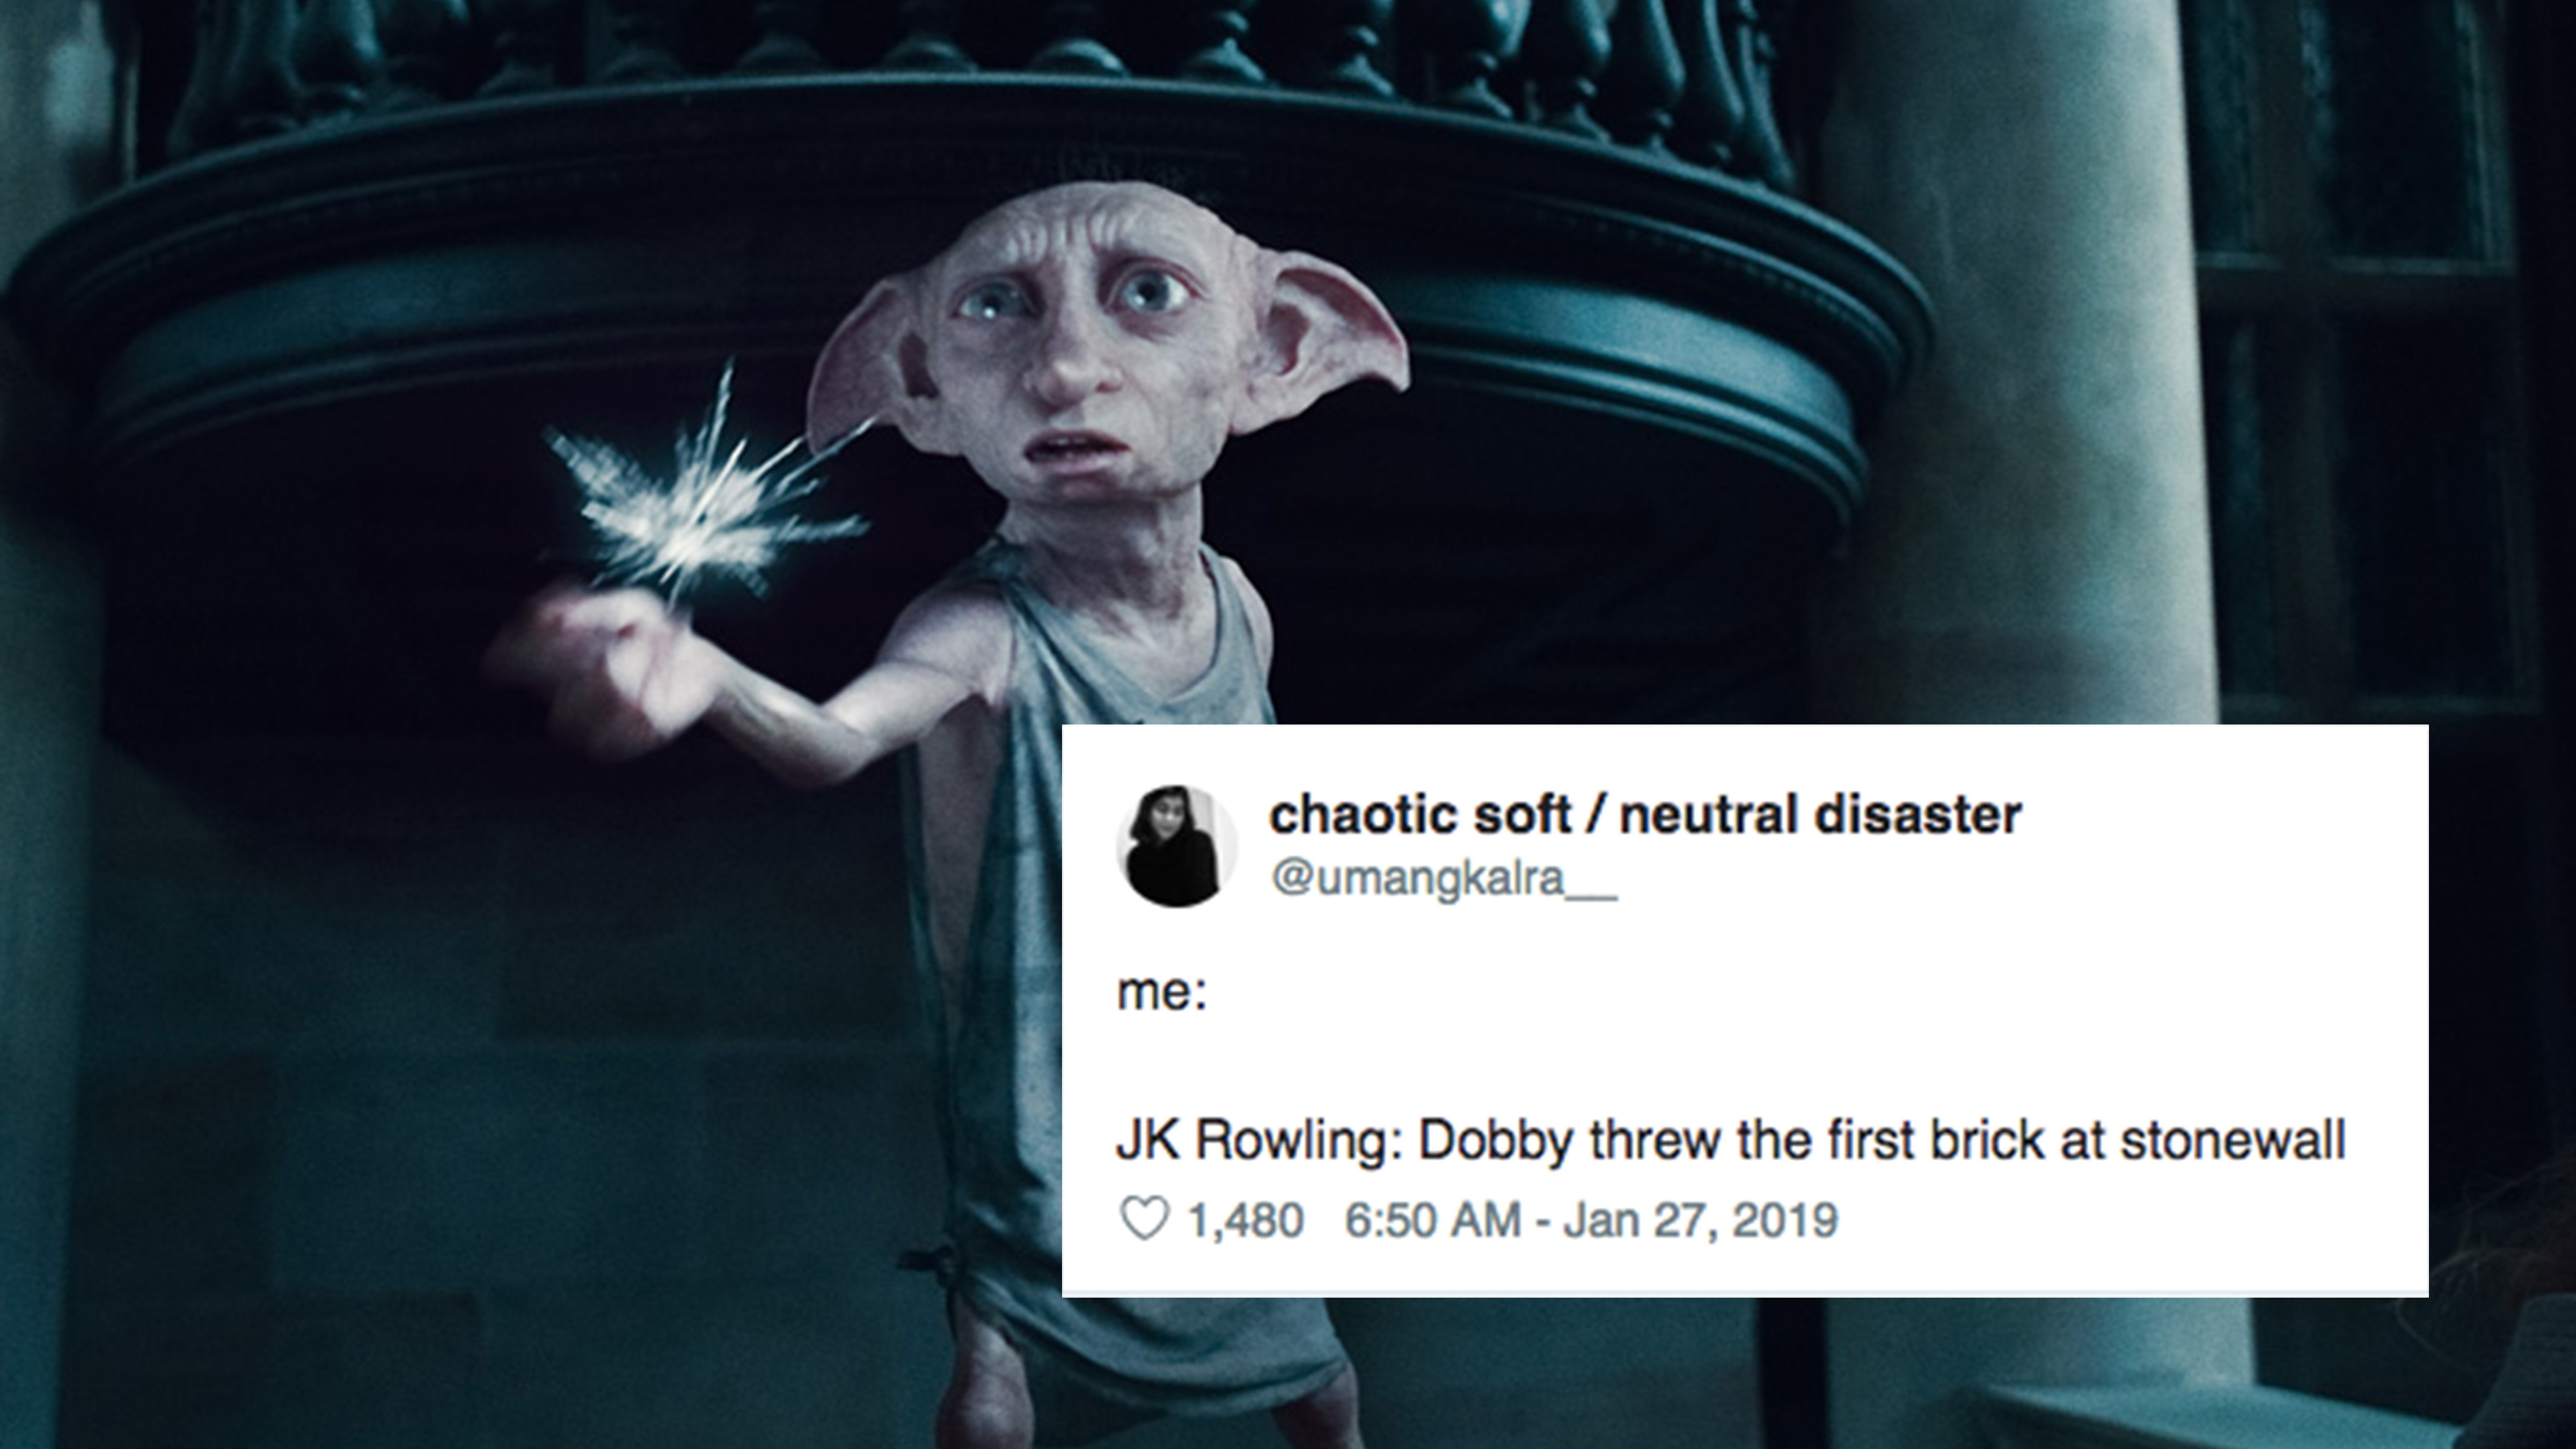 Jk Rowling Meme Life In The Realm Of Fantasy